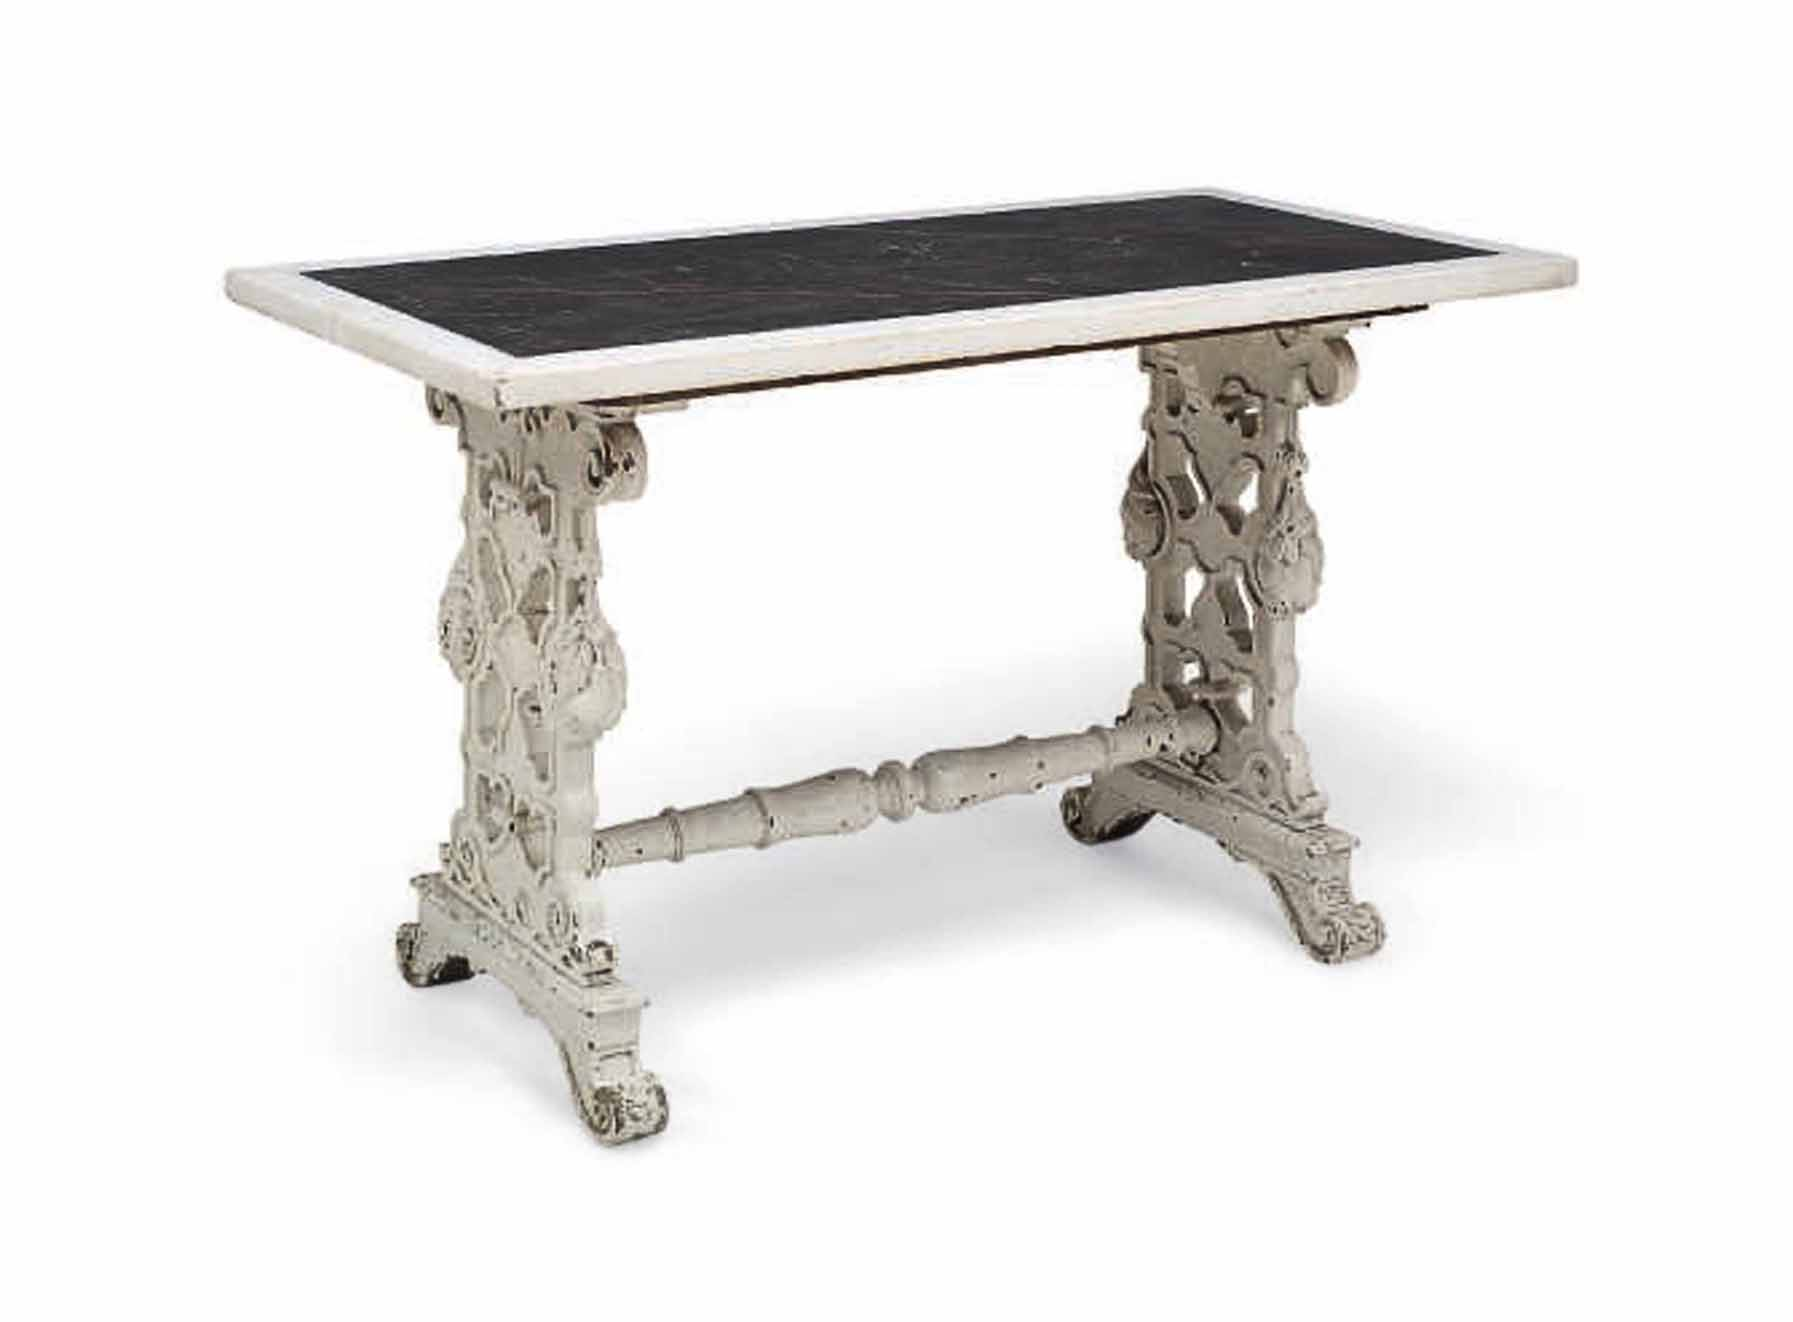 A WILLIAM IV WHITE-PAINTED TABLE